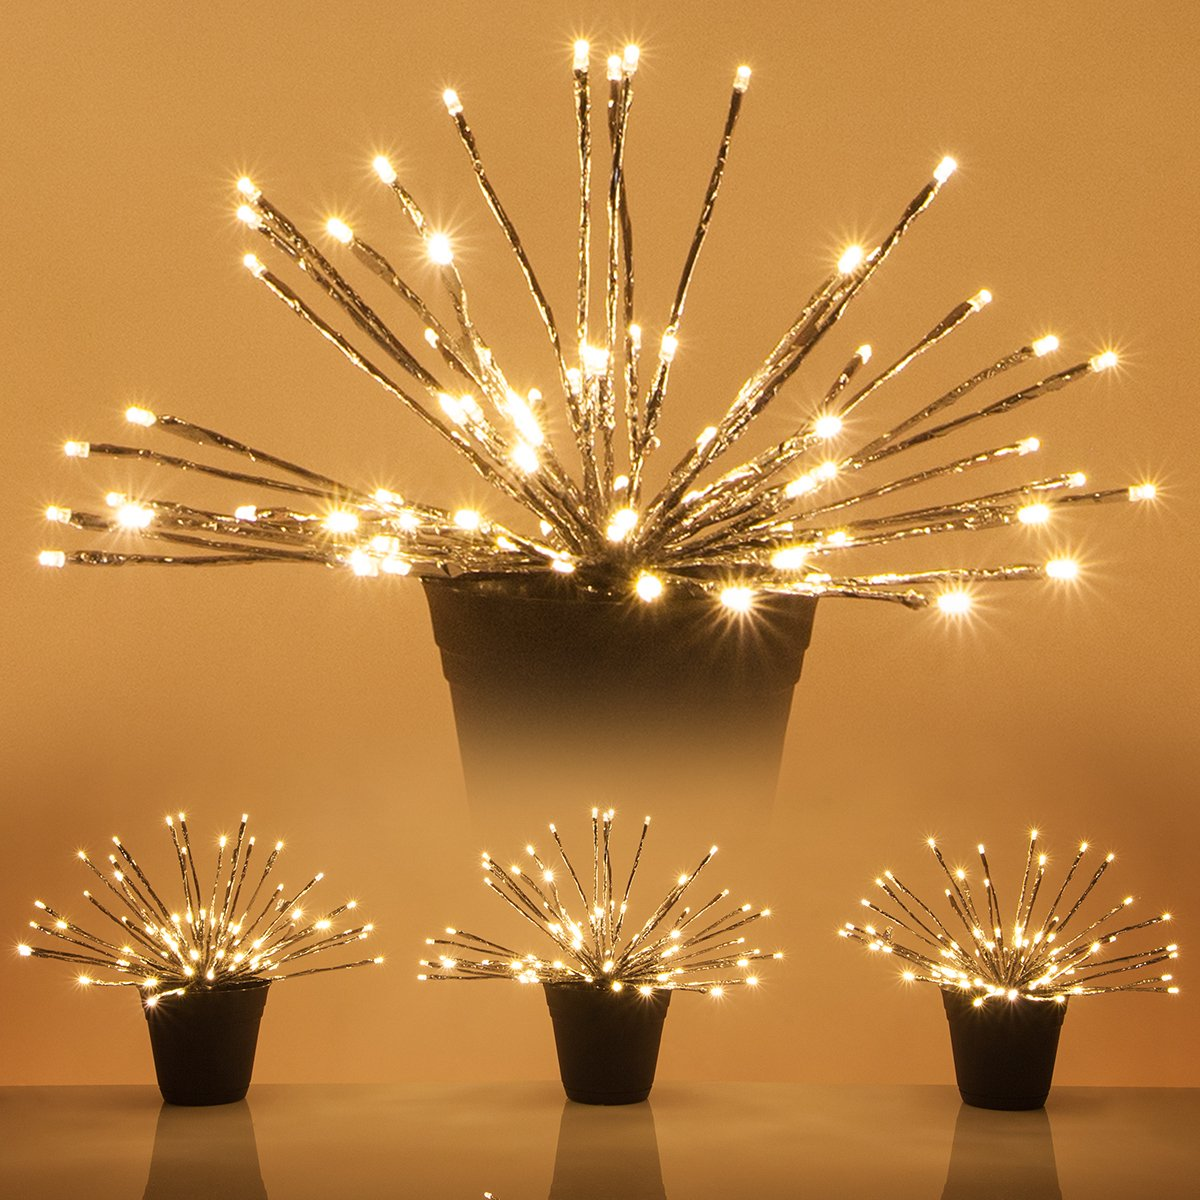 LED Starburst 5mm Lighted Branches - Fairy Light Balls - Christmas Light Balls (15'', Silver Branches/Warm White Twinkle Lights, Set of 3)